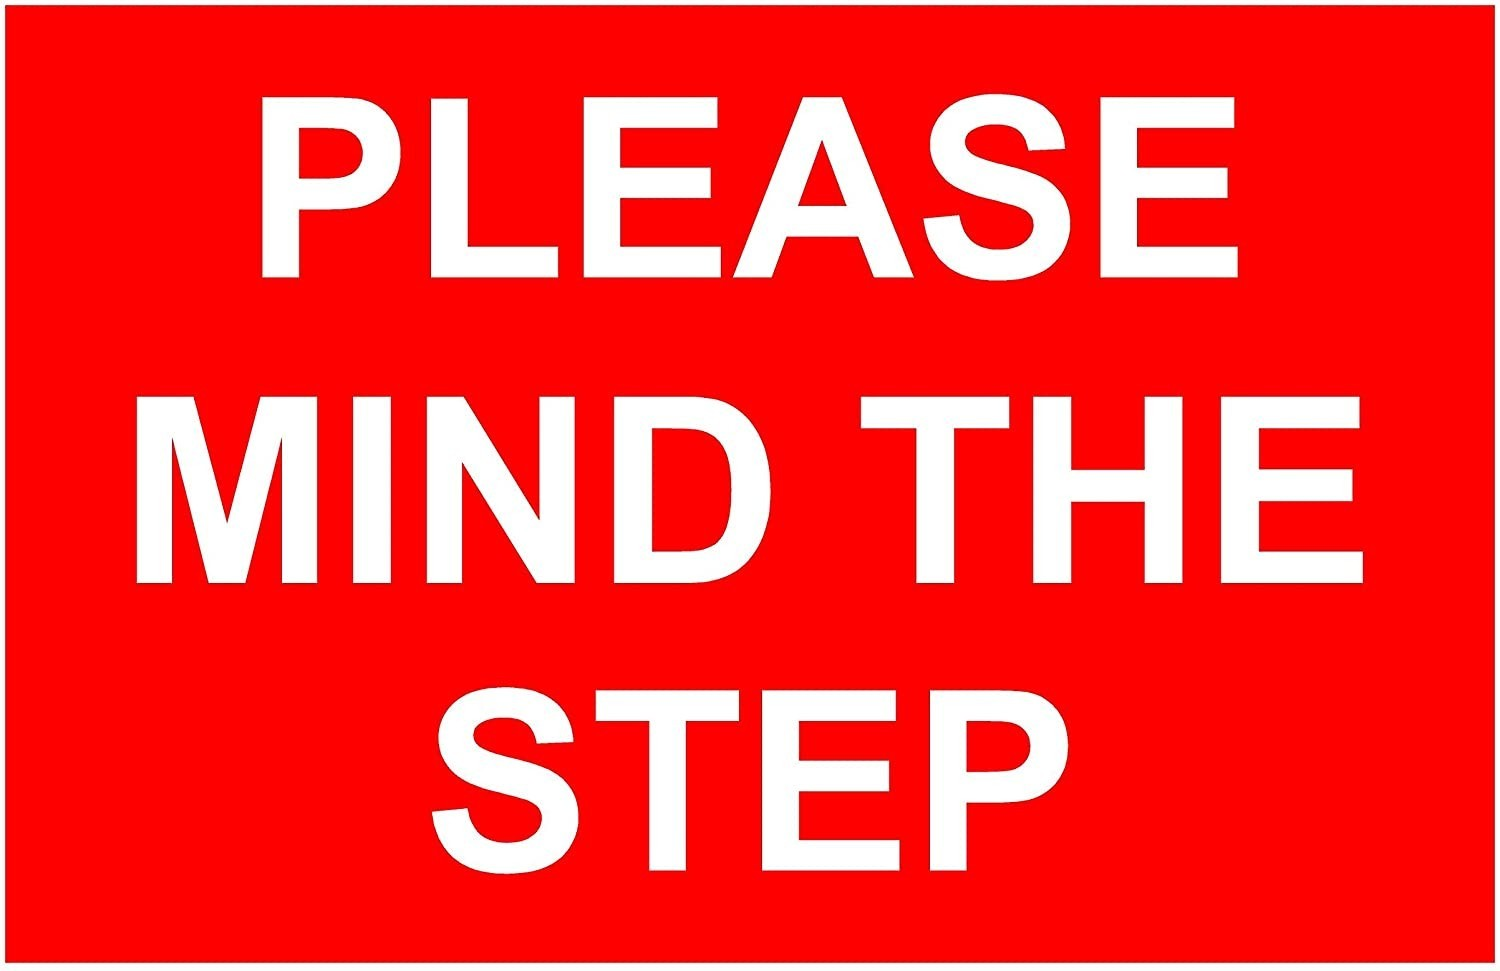 PLEASE MIND THE STEP (Example Sign)